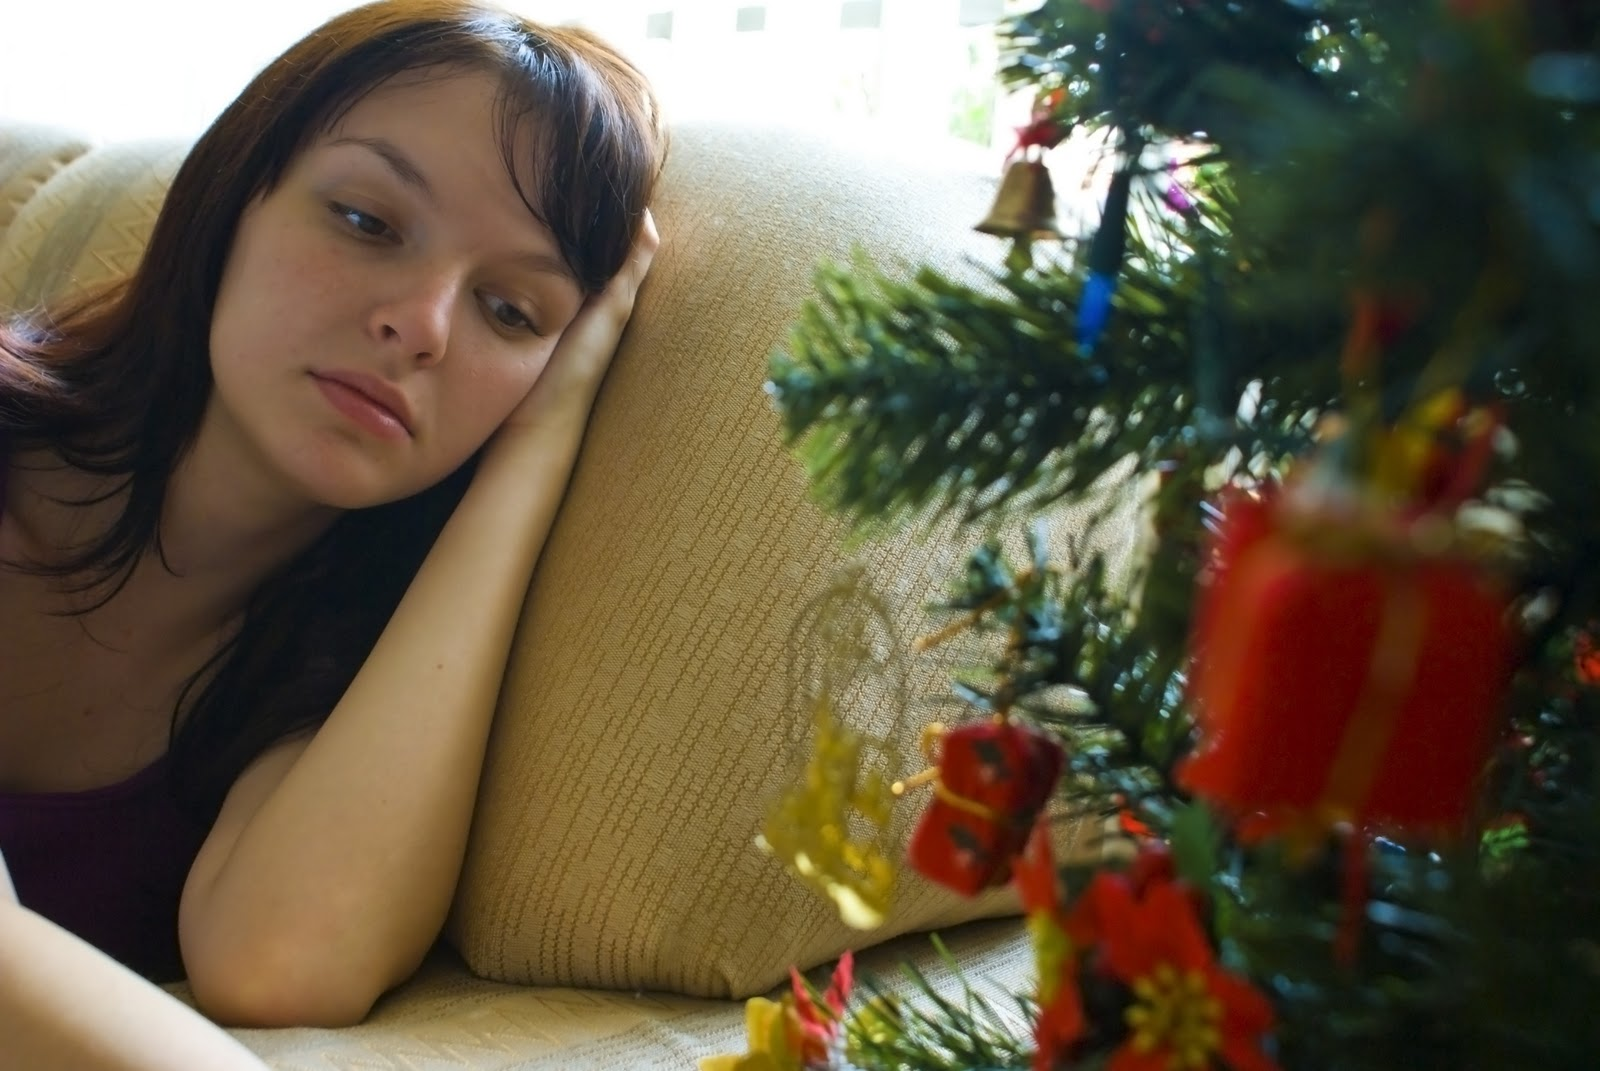 Christmas depression - yes, it can affect anyone, and it shouldn't be ignored